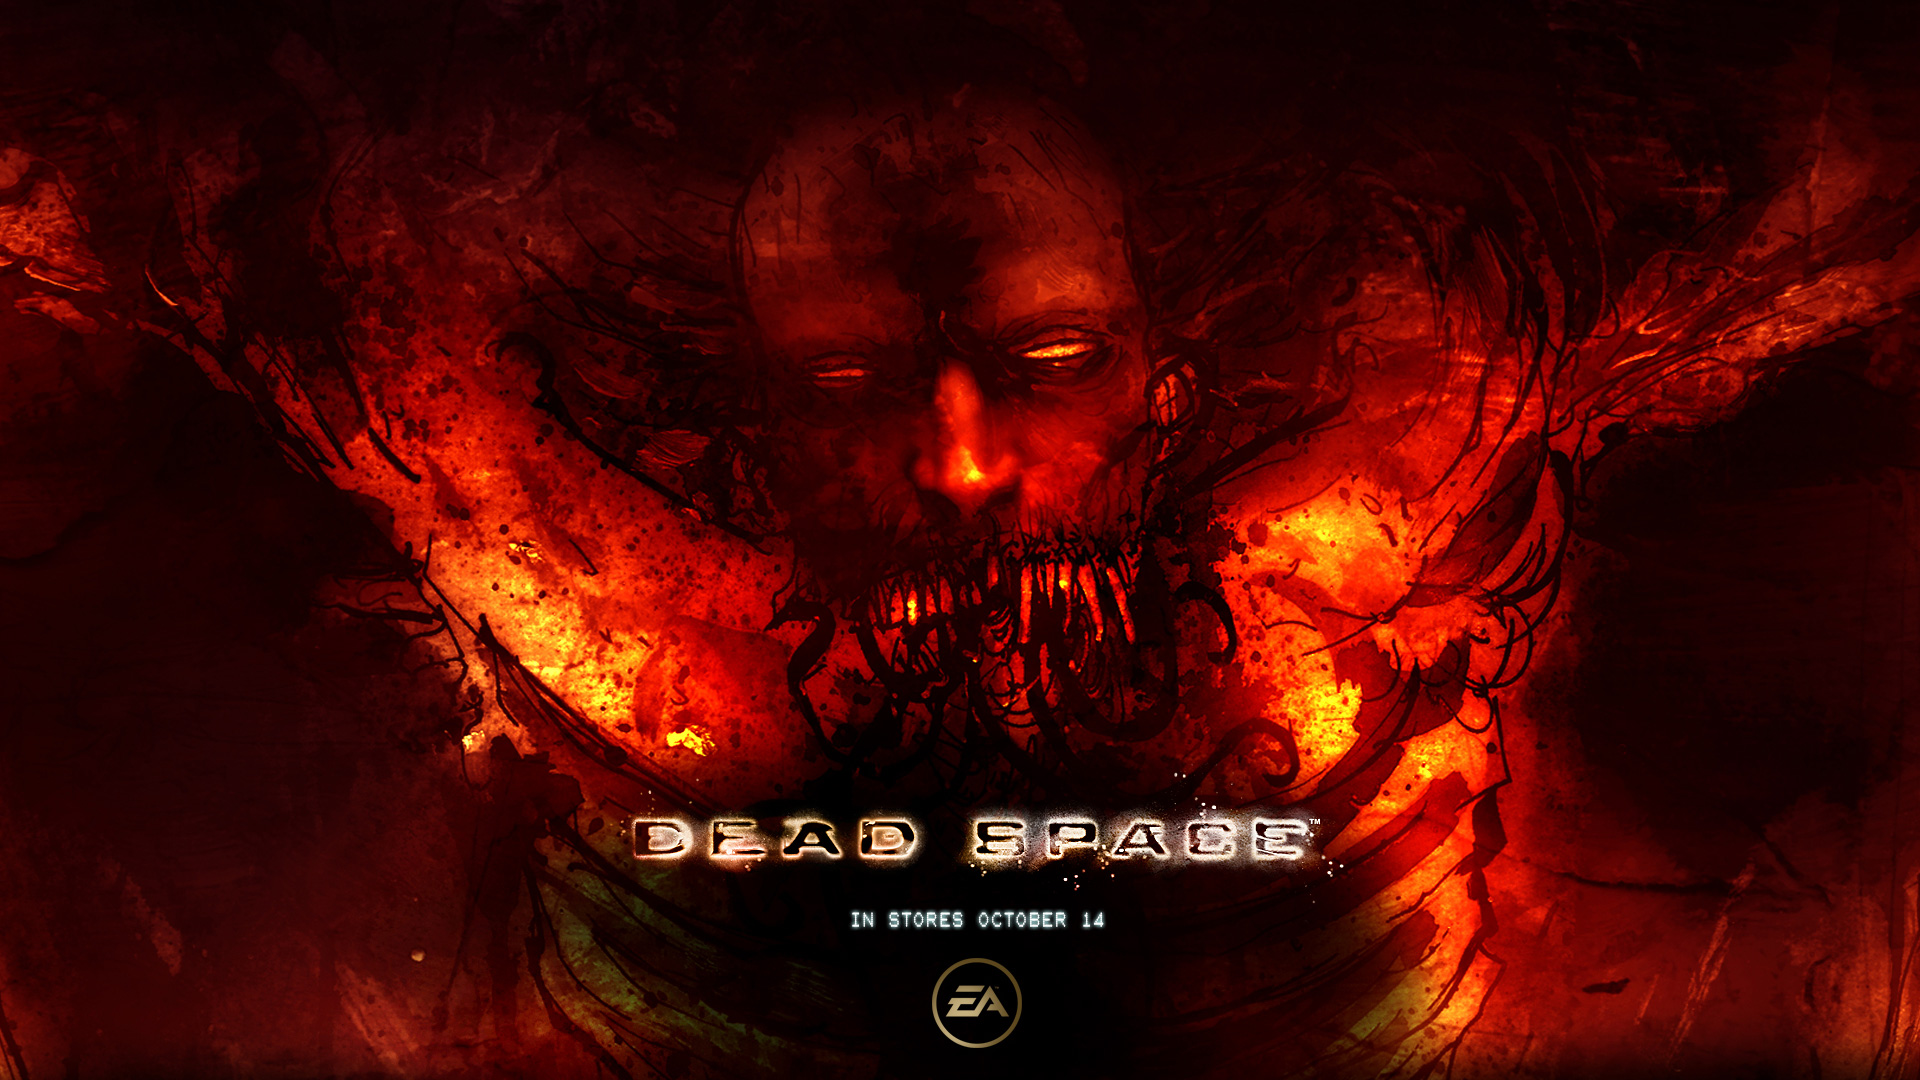 Dead Space Wallpaper in 1920x1080